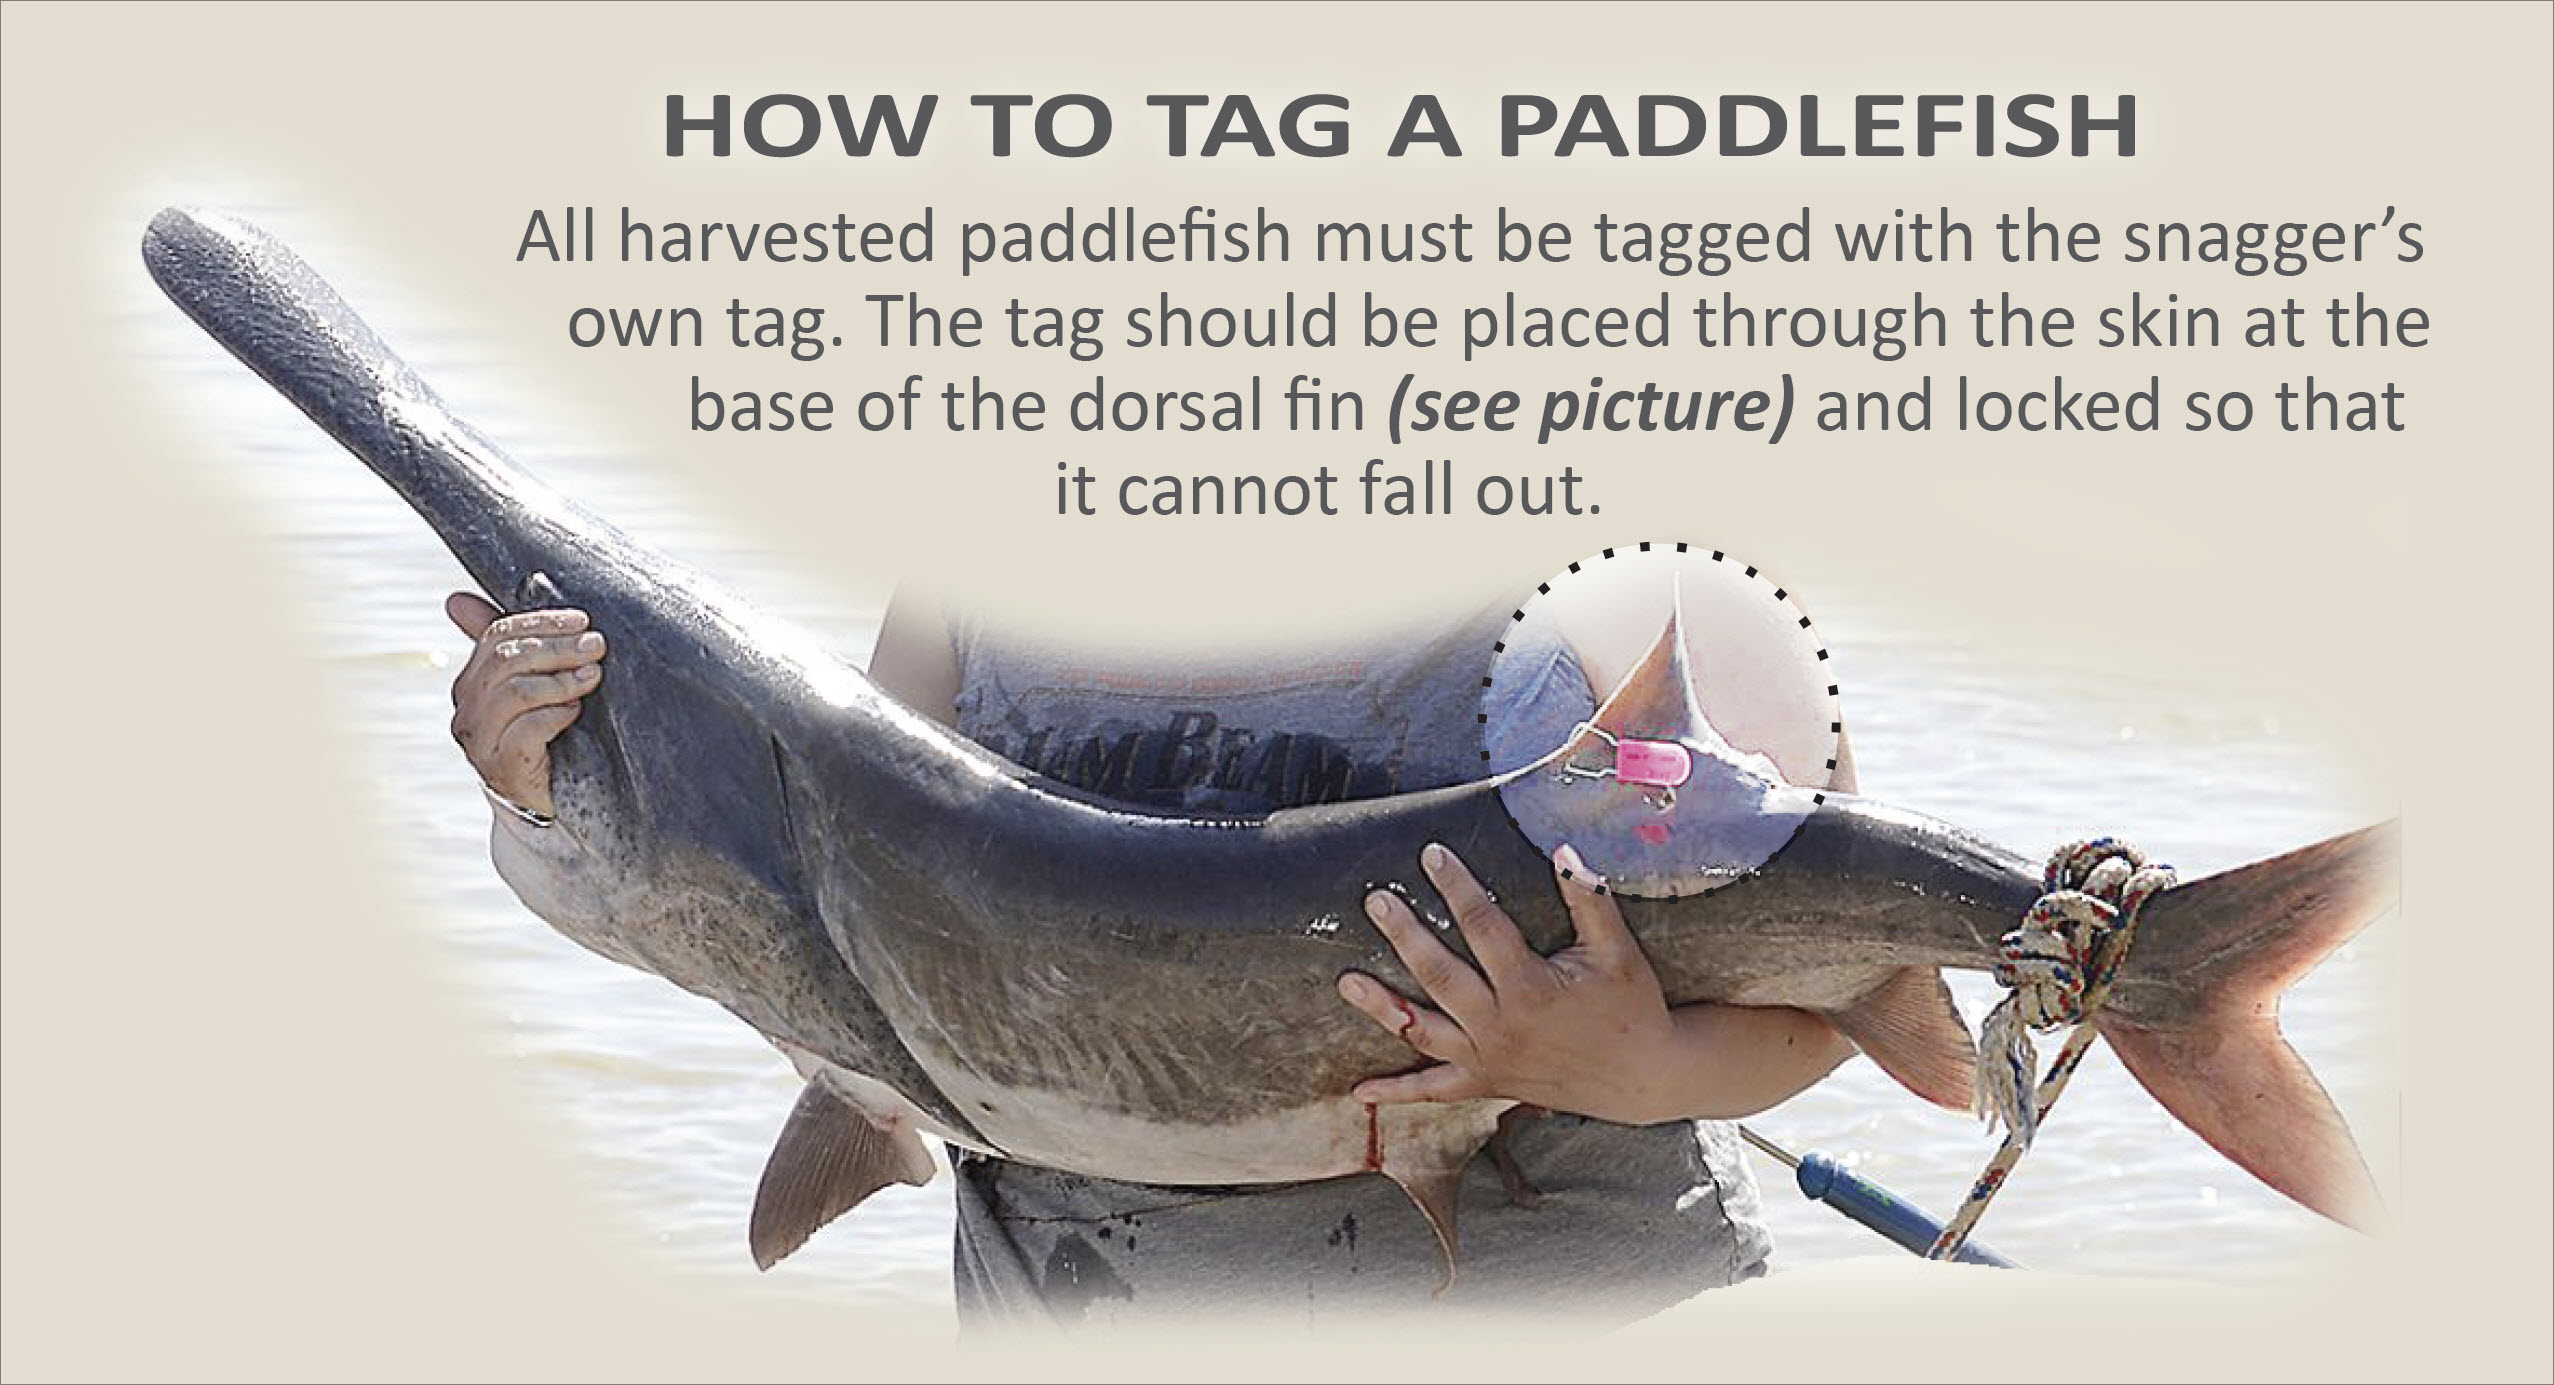 Paddlefish with tag